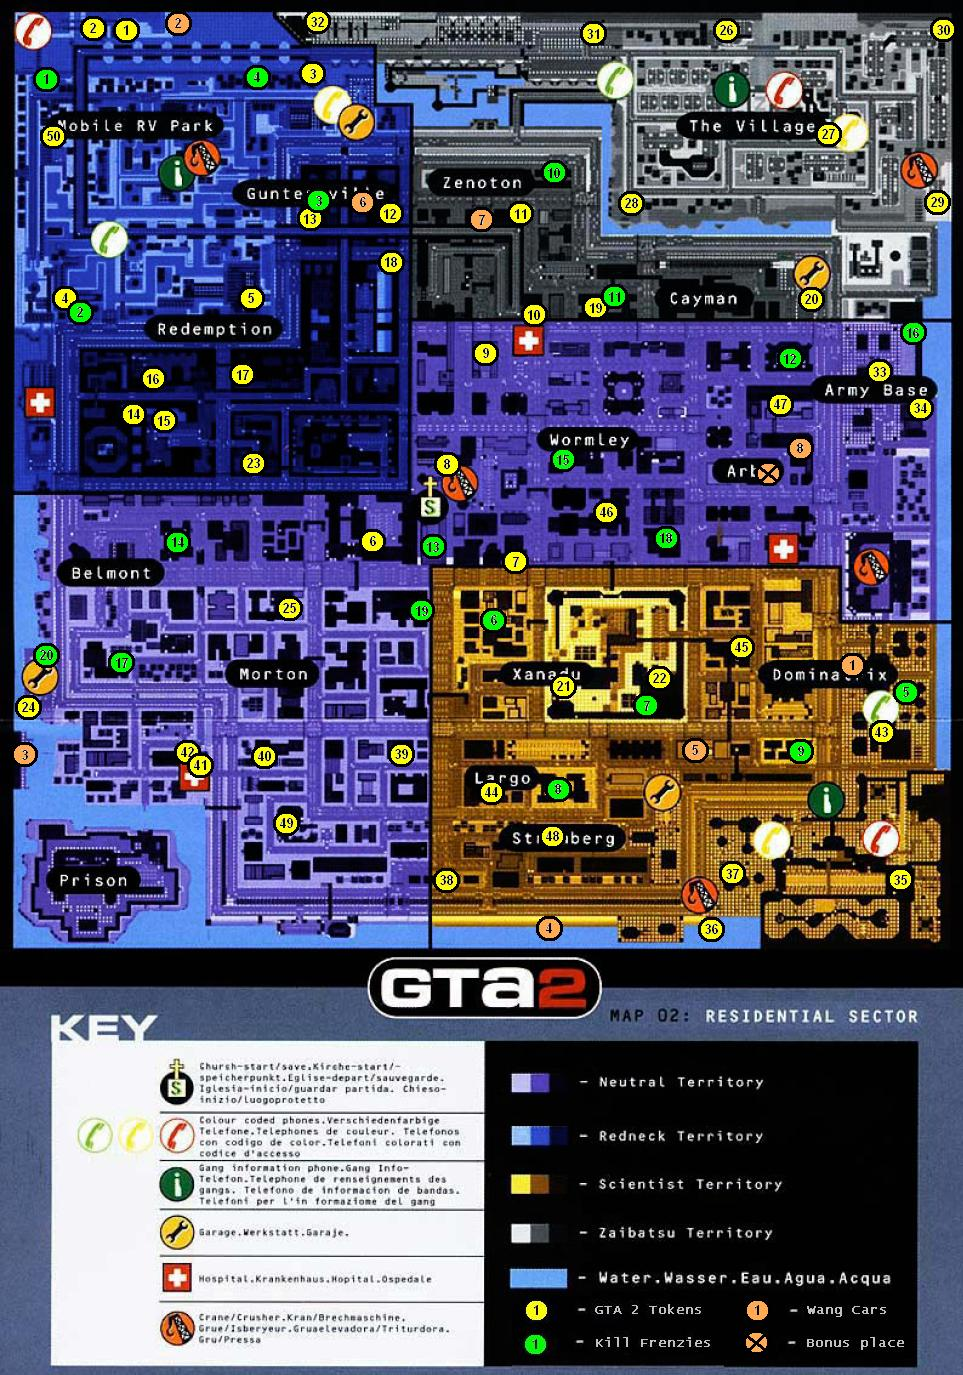 Gta 2 gameboy color - Residential